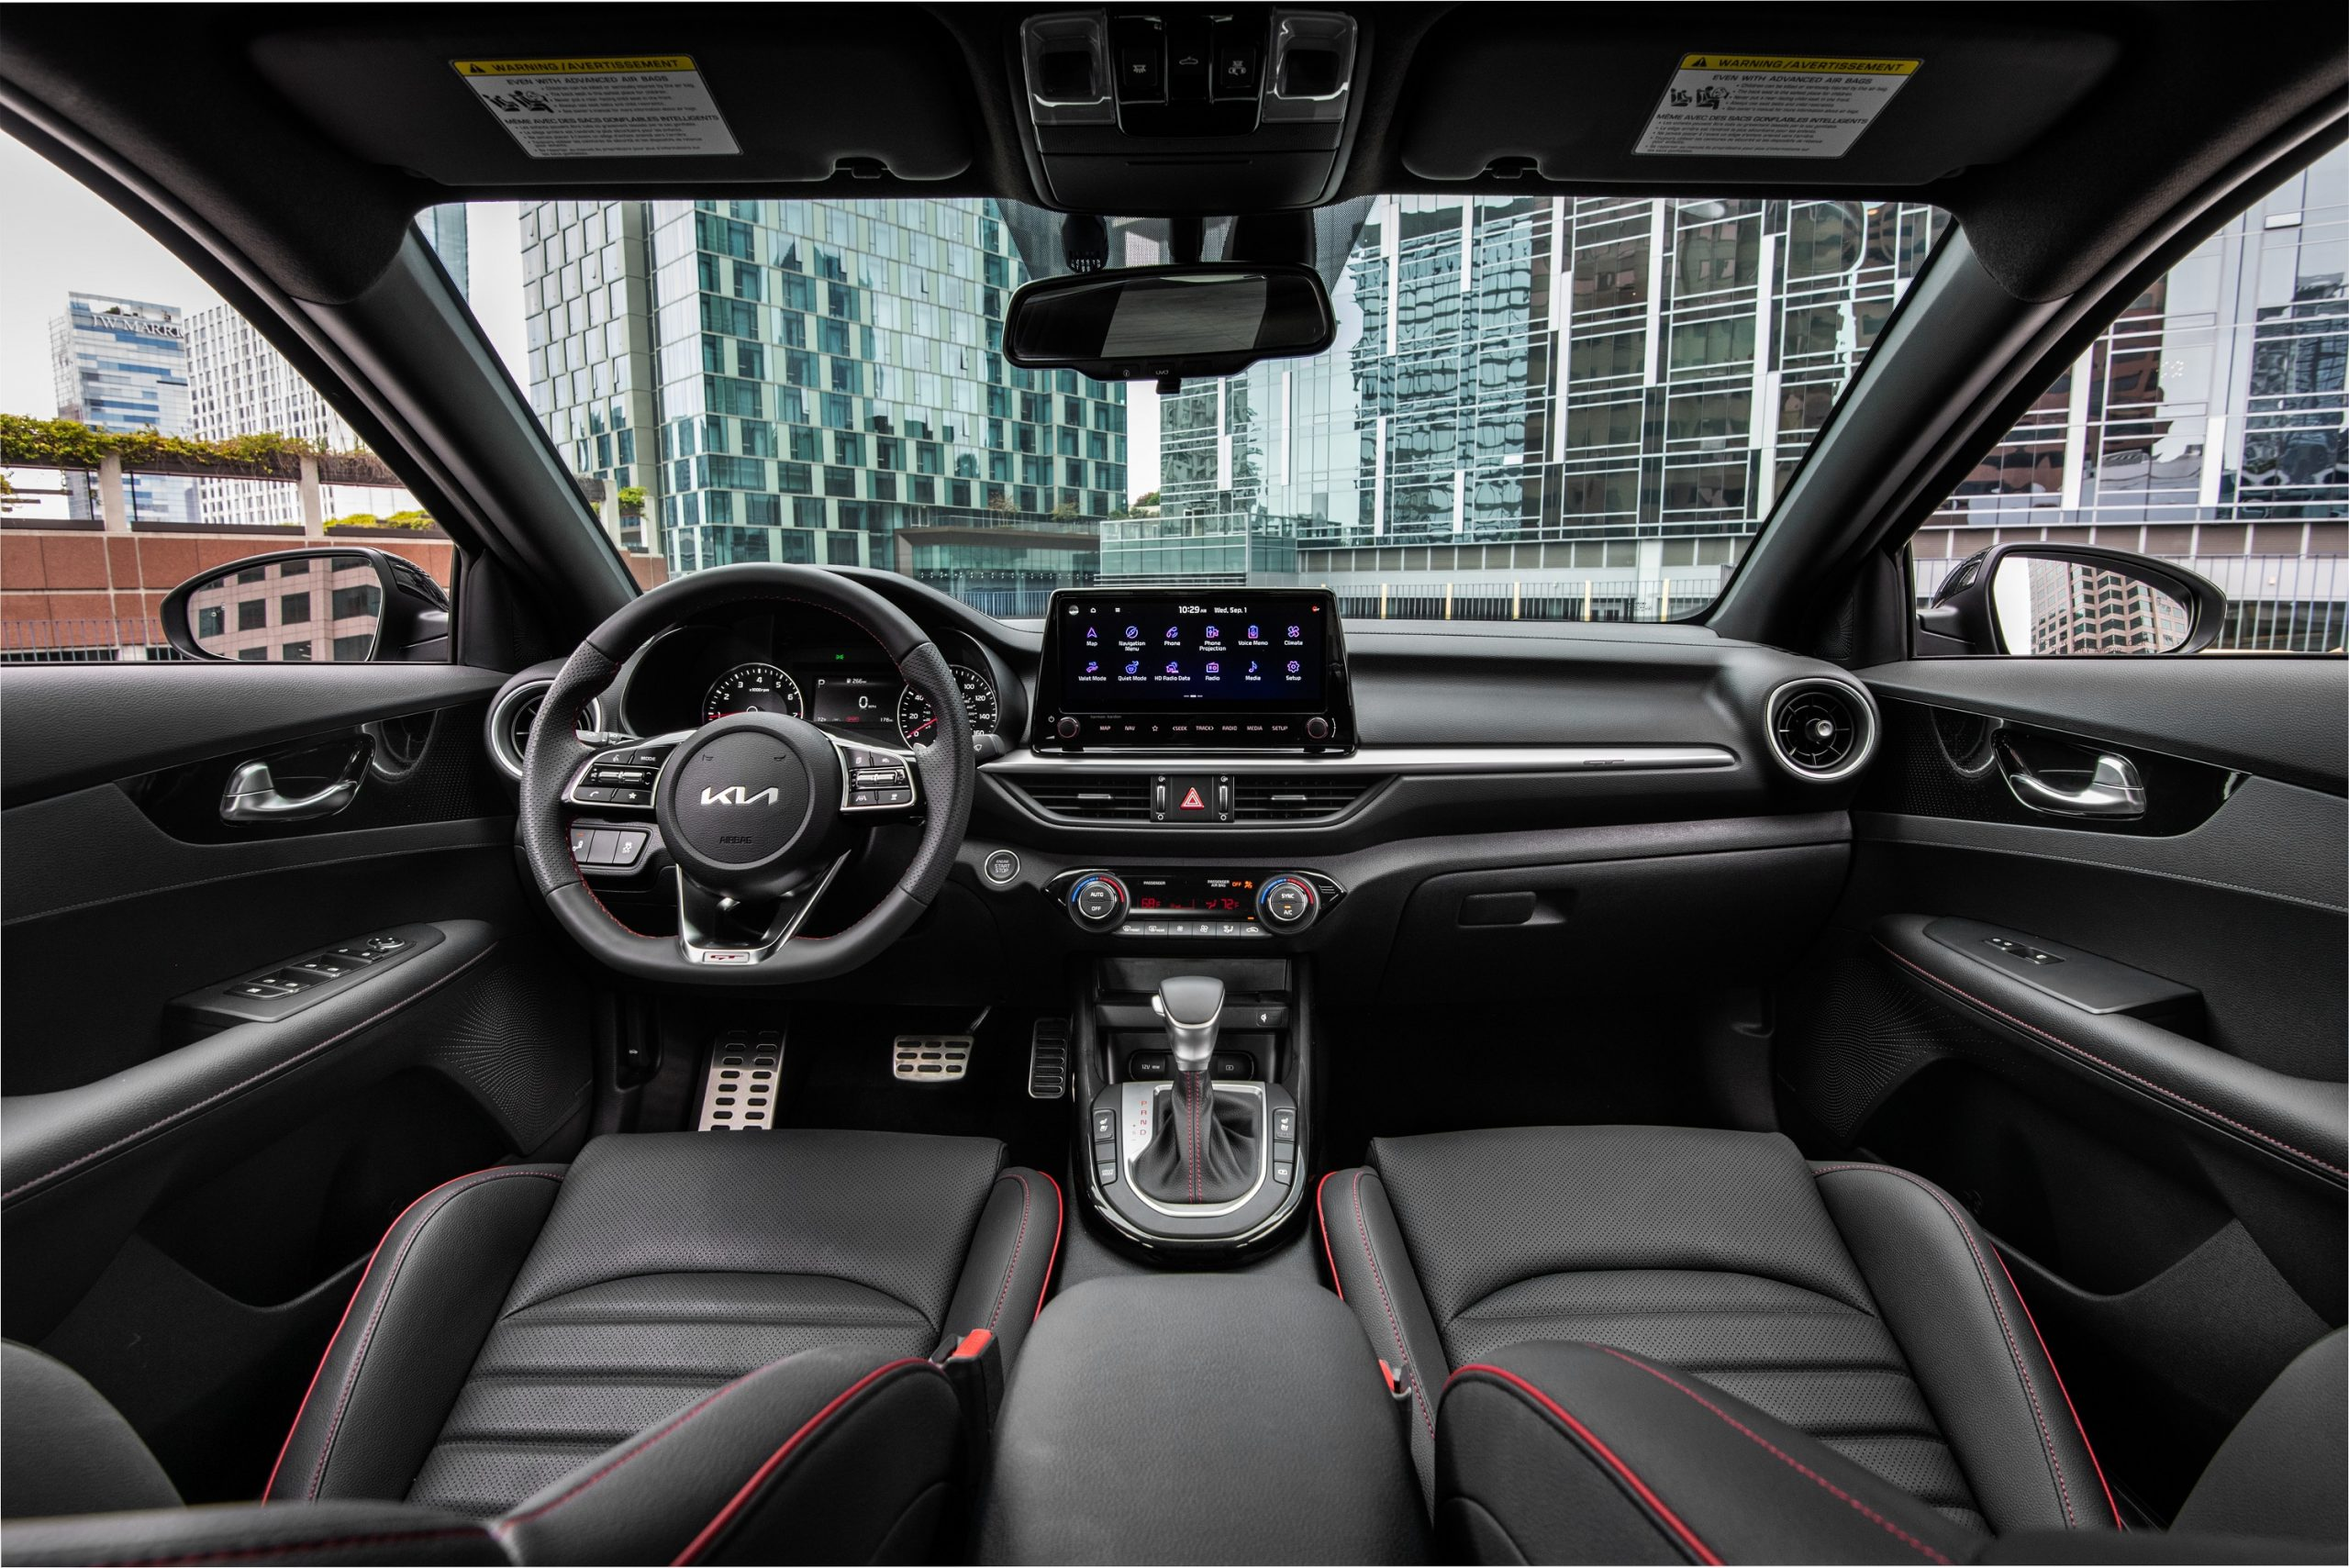 The interior of the new Forte with black leather seats and contrast red stitching